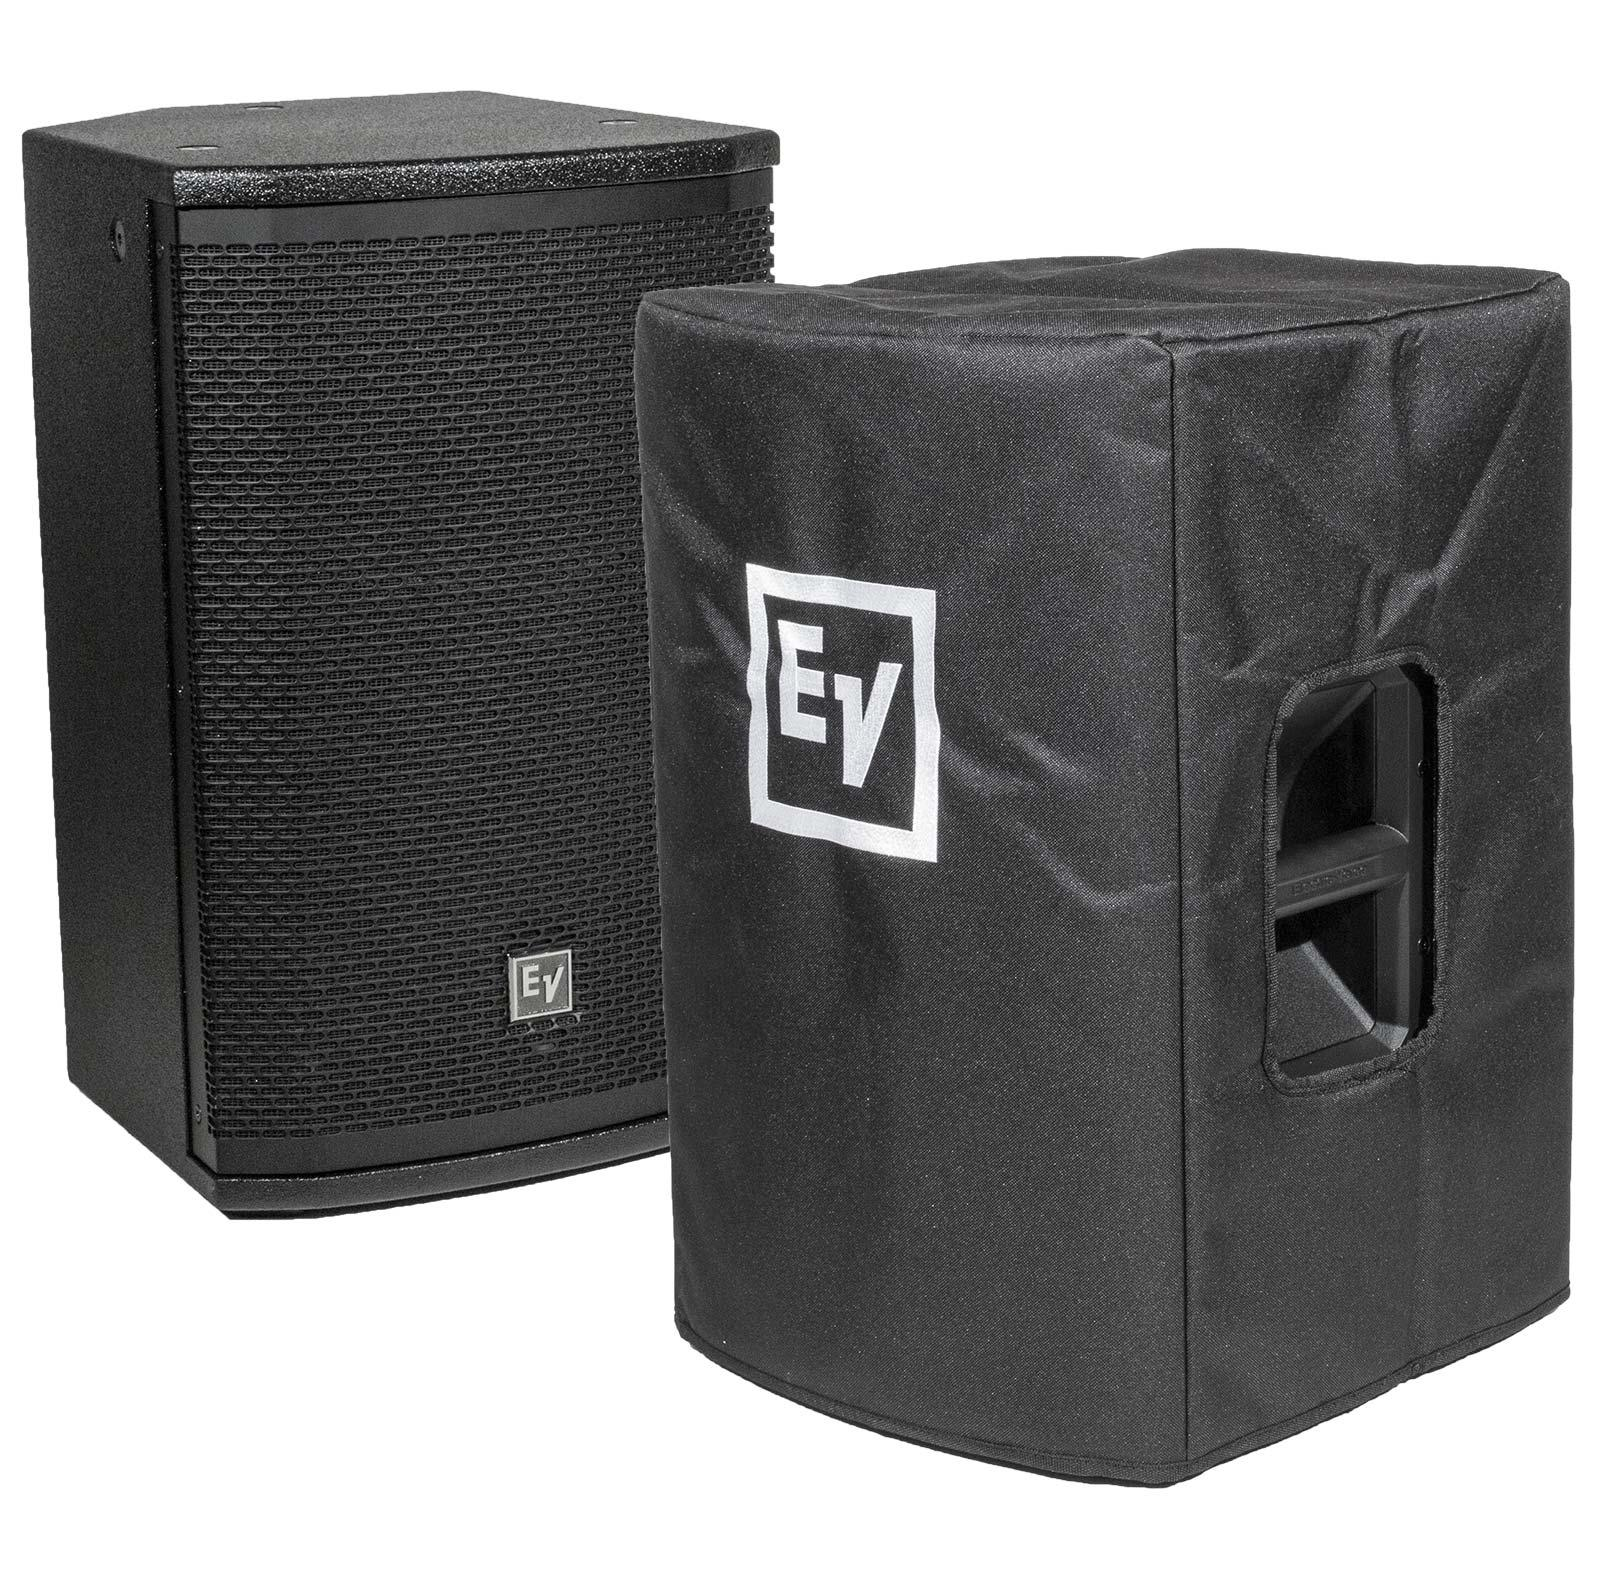 2 Electro Voice Etx 12p Covers Free Ts 100b Stands Bag